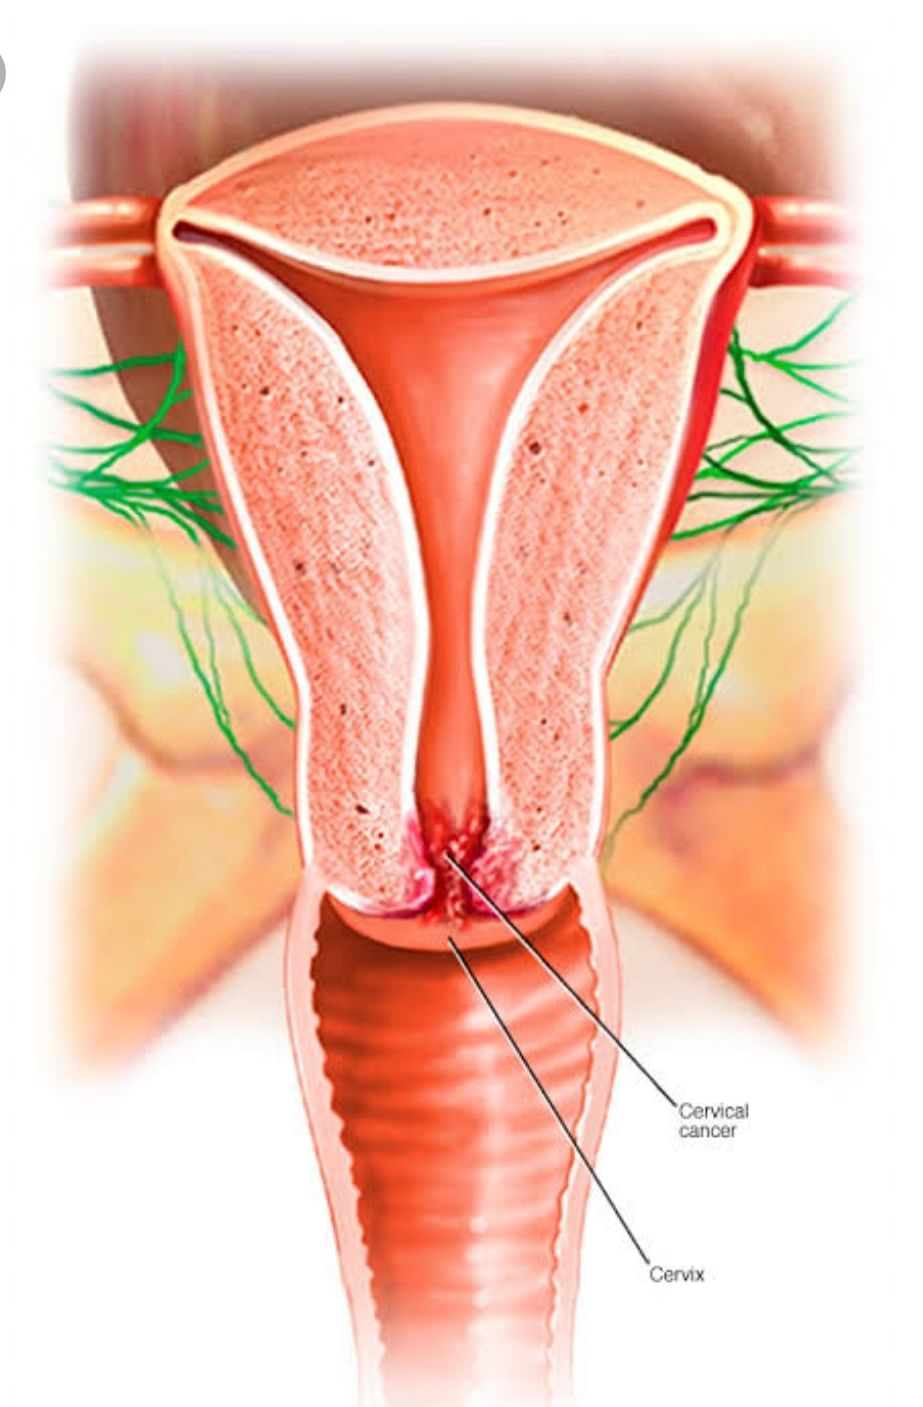 Cervical Cancer: Know The Signs And Symptoms